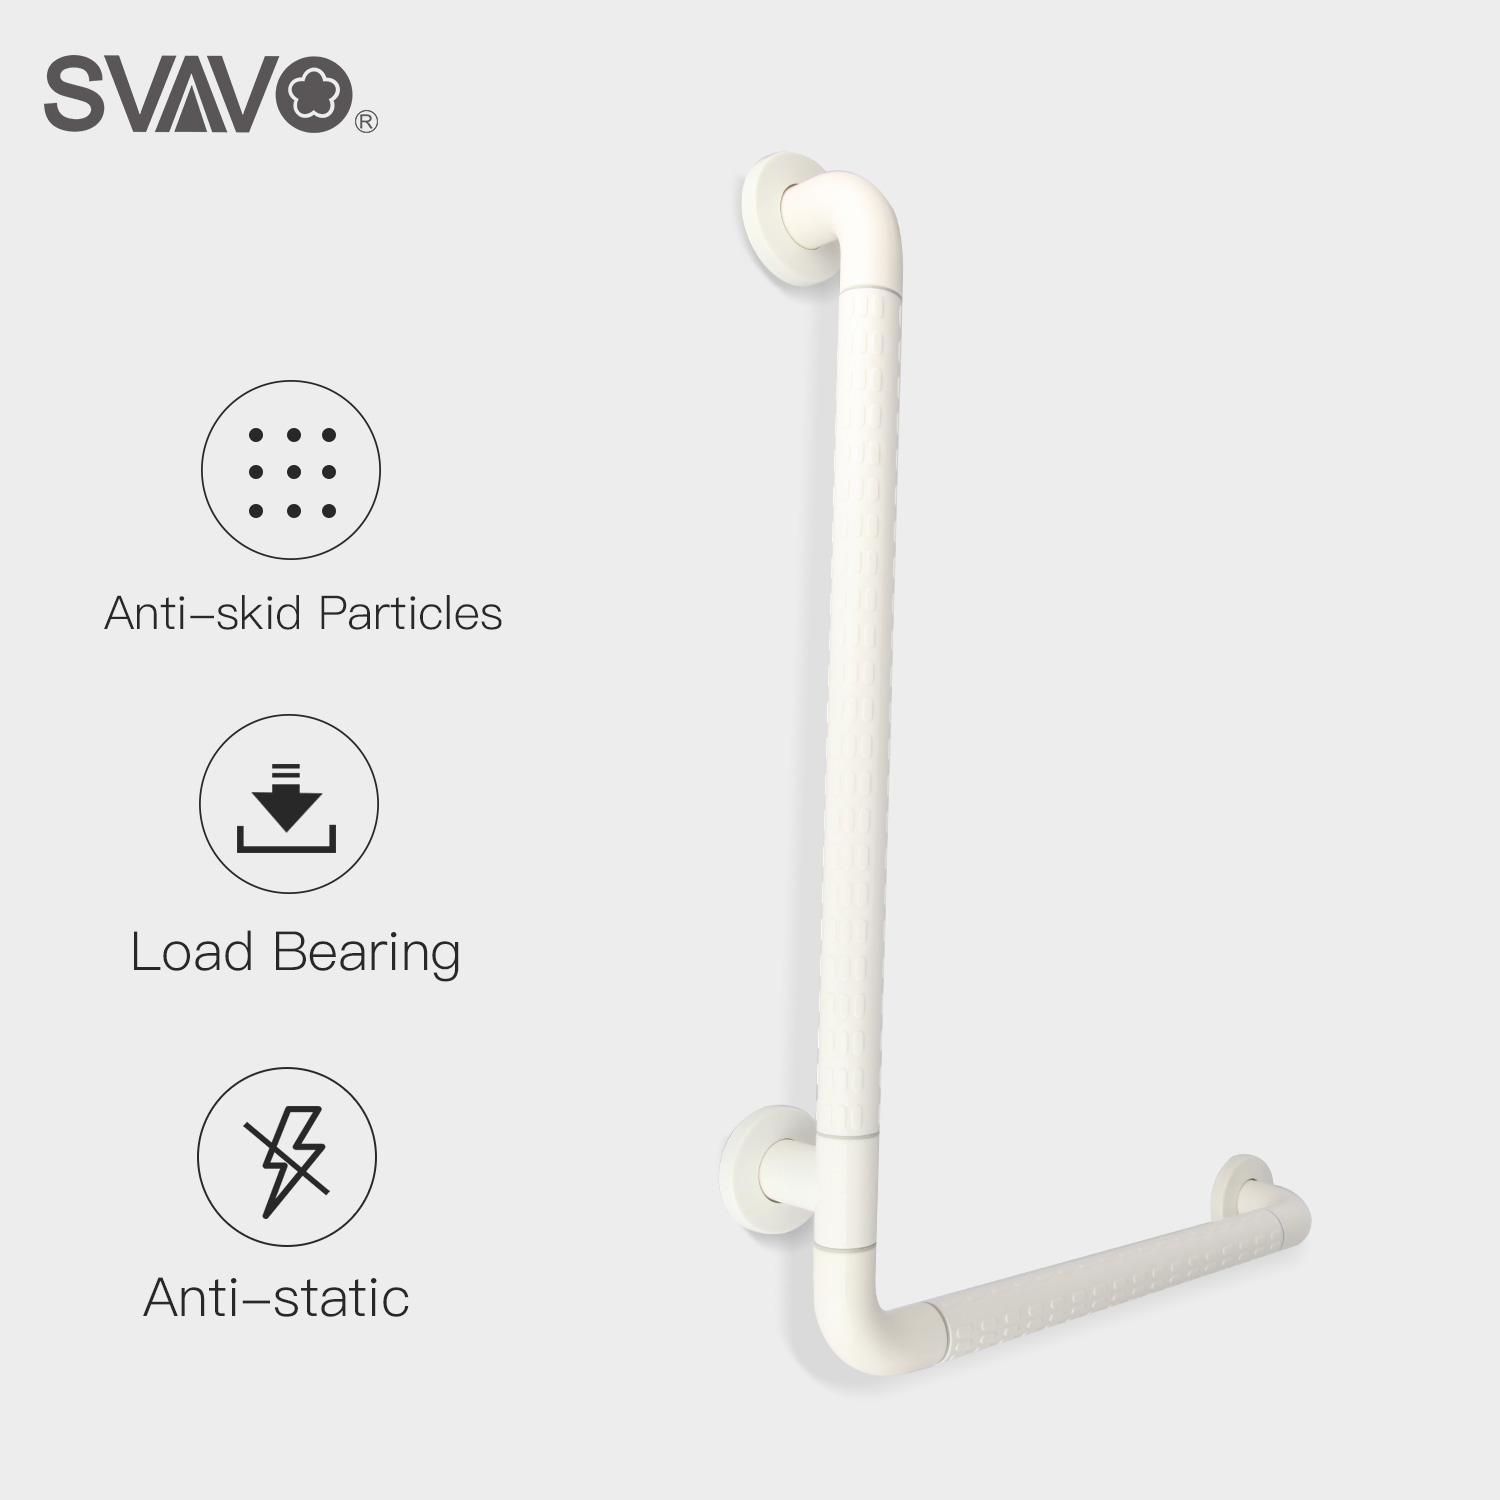 Svavo 600mm/700mm Length Wall Mounted Bath Shower Grab Bar Bathroom Safety Rail Anti-Slip Grip With Concealed L Shaped Safety Assist Grab Bar By Svavo.